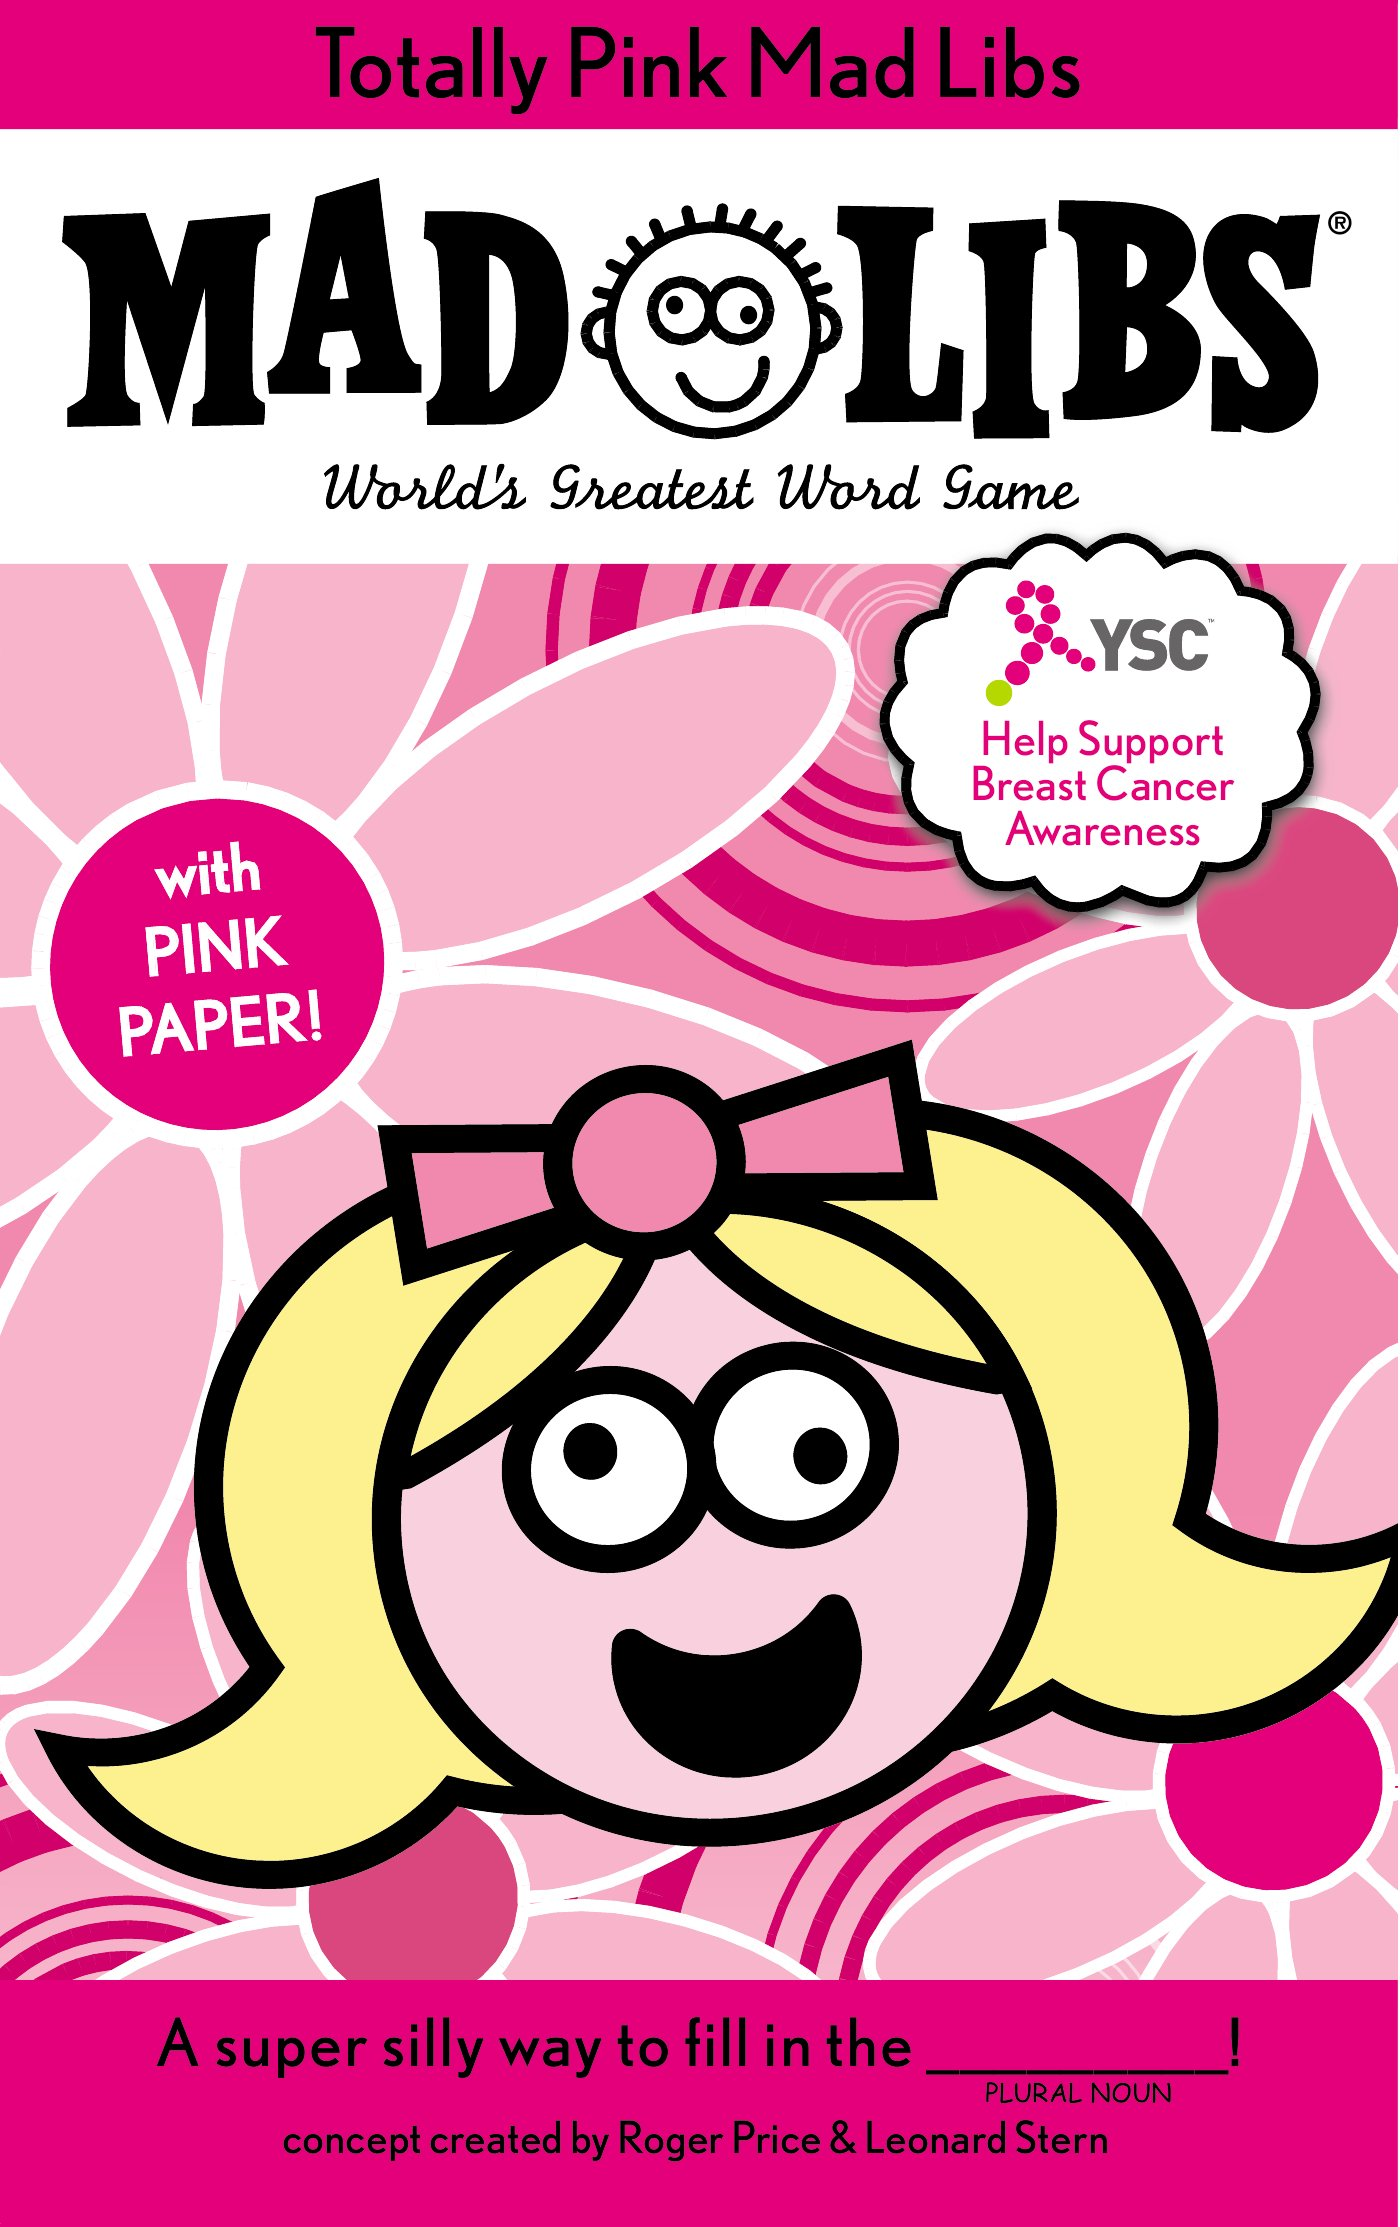 Totally Pink Mad Libs (Breast Cancer Awareness) PDF